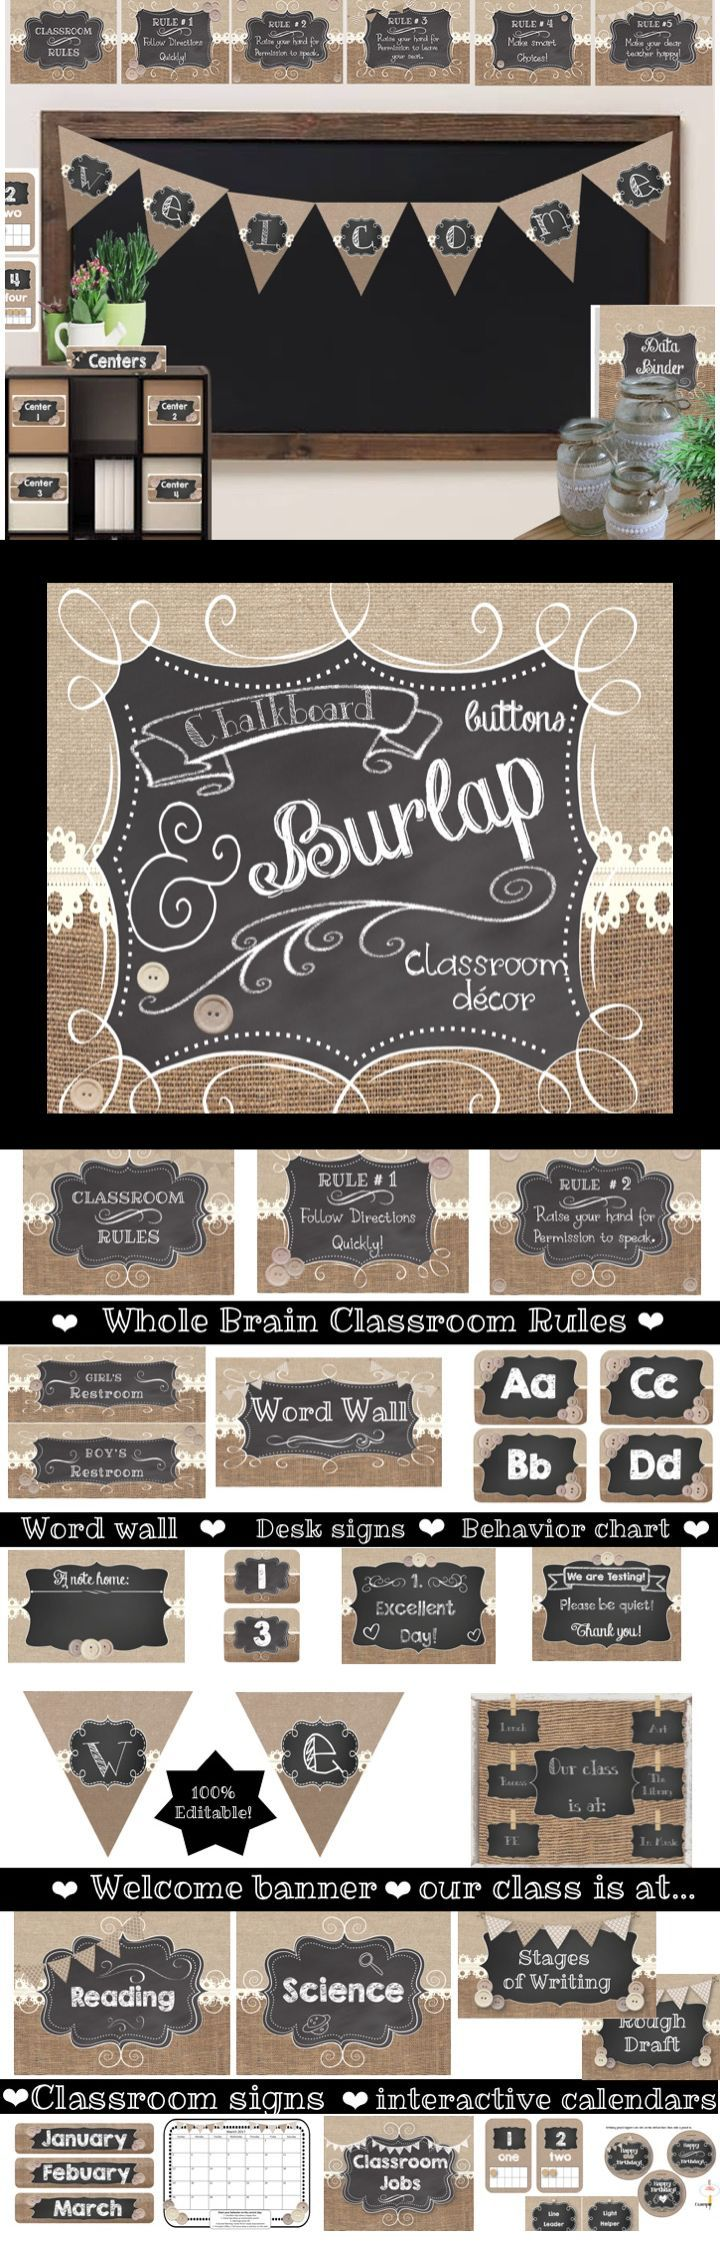 Decorate your classroom with rustic charm. Thus burlap decor set has burlap, chalkboards and unique buttons. It creates a classic look with lots of charm!